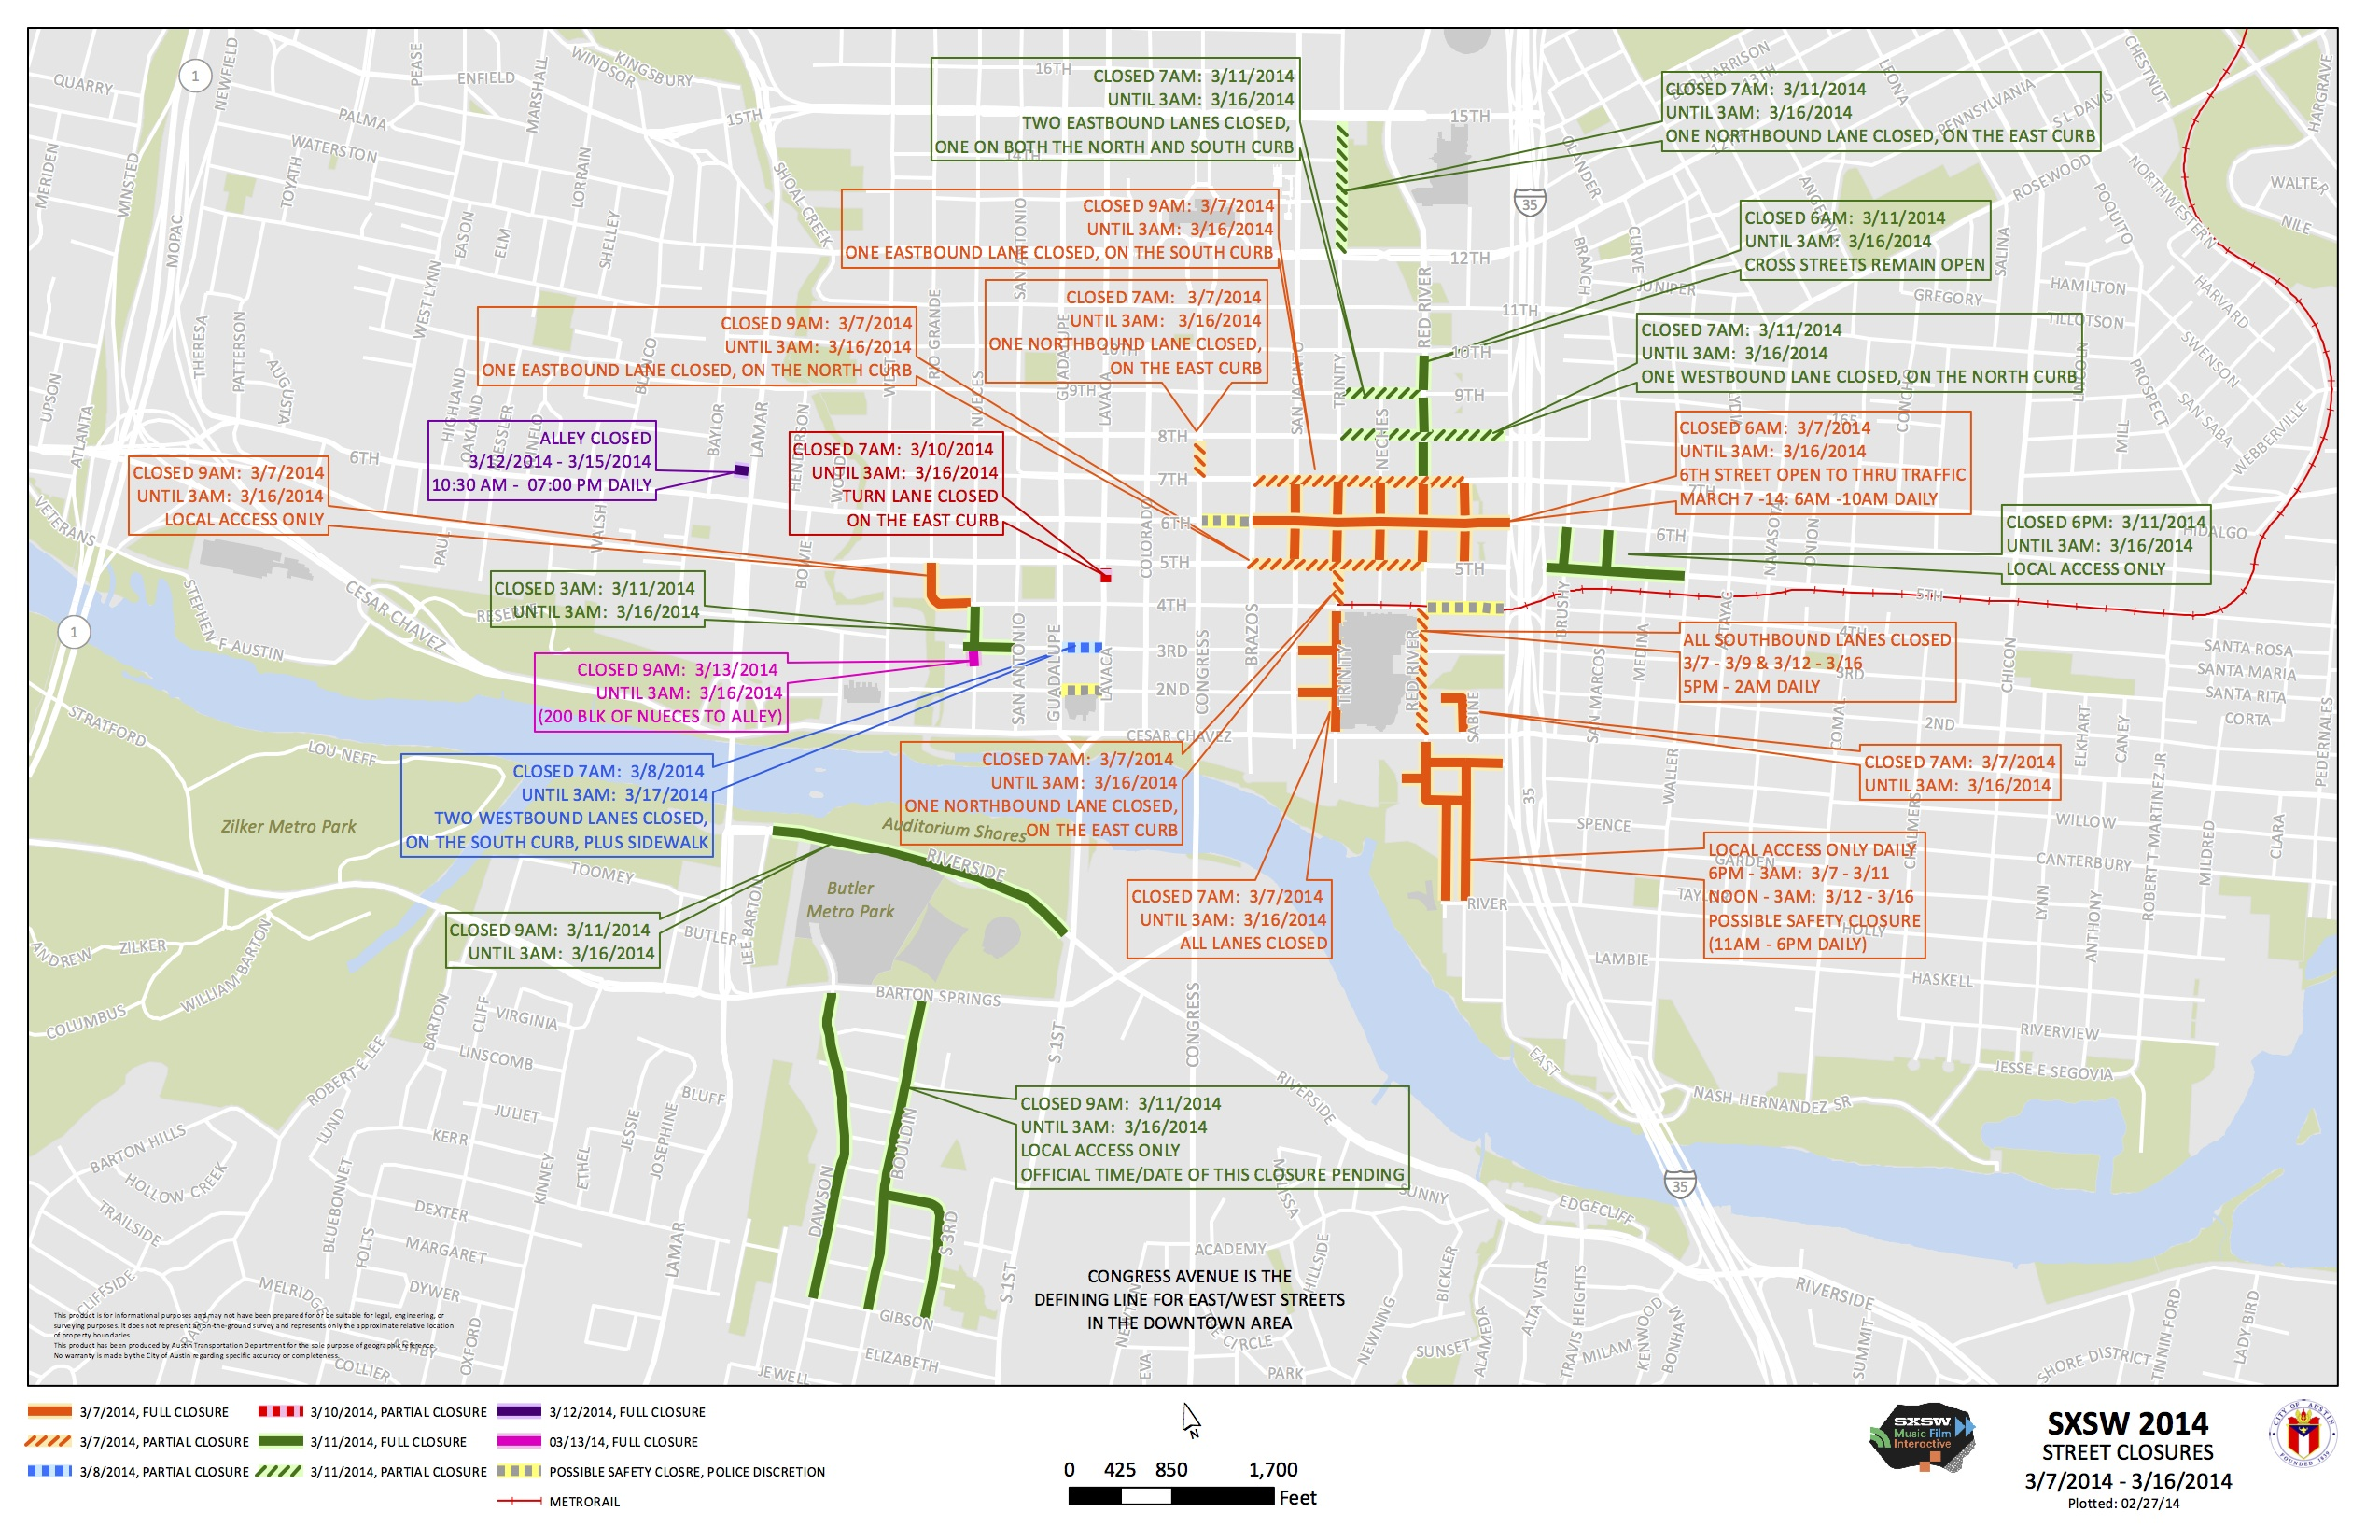 Map All The Streets Downtown Closed for SXSW Austinist